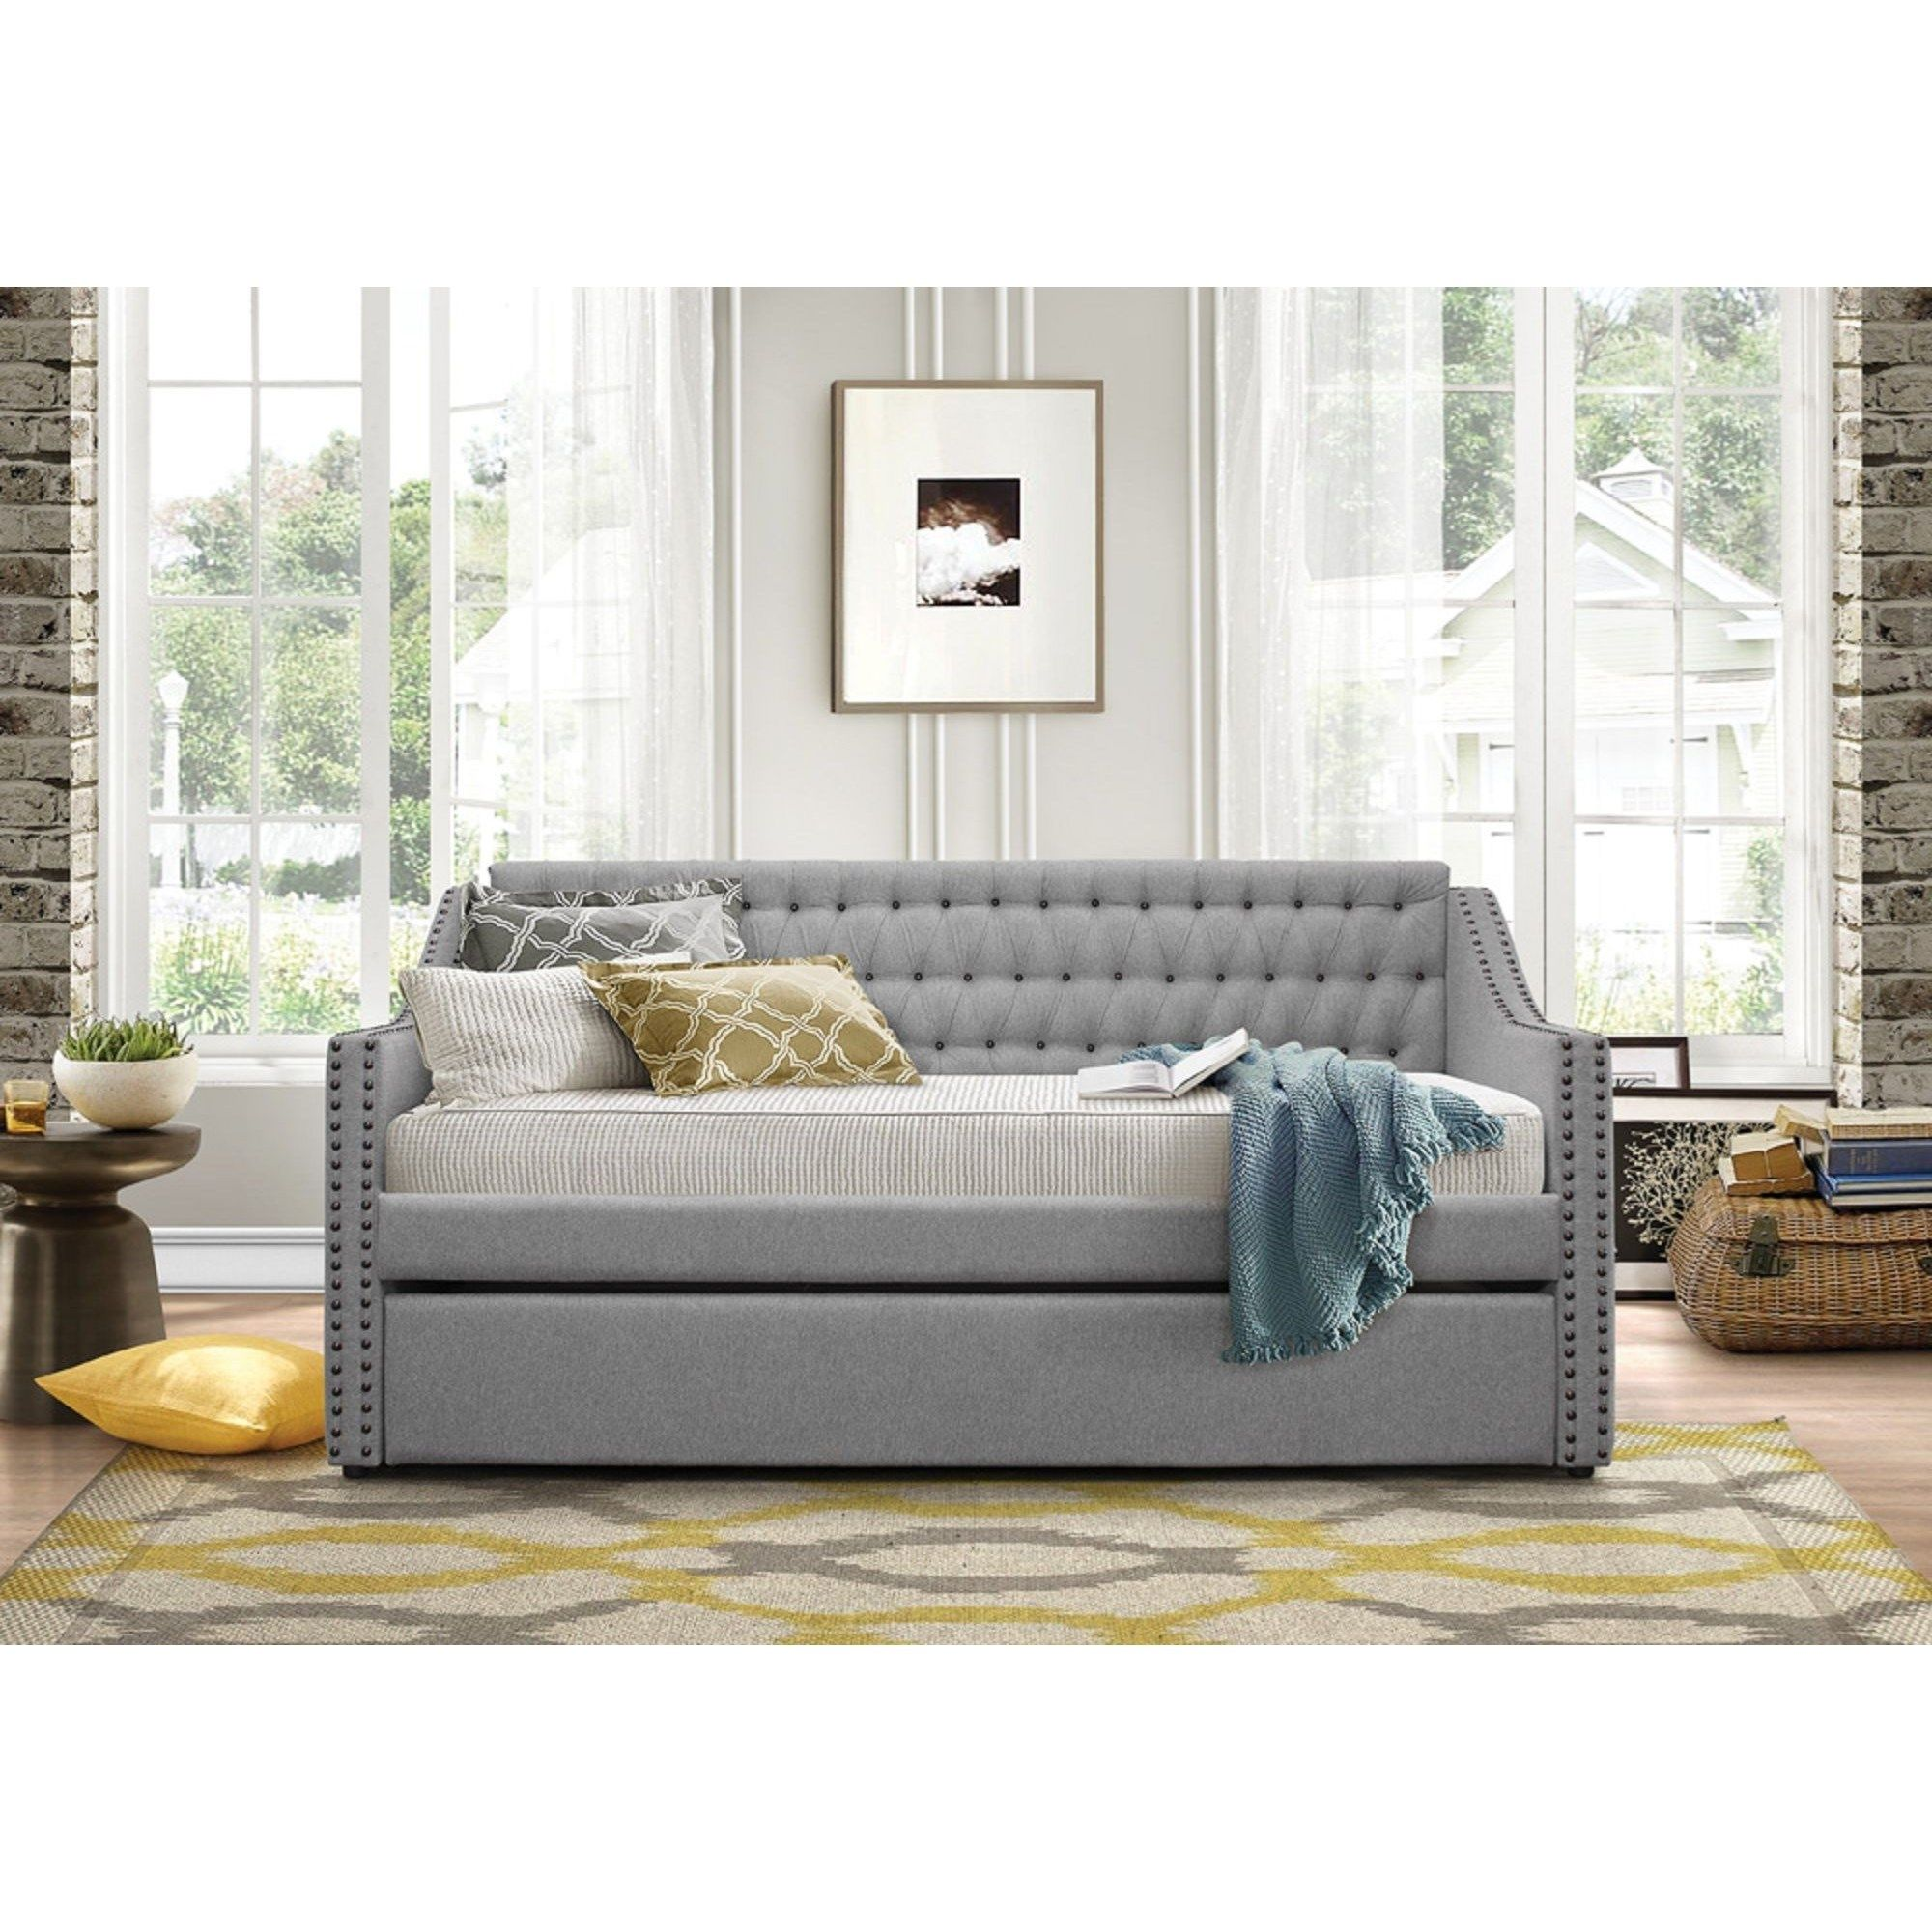 Daybeds Tulney Upholstered Daybed W Trundle By Homelegance At